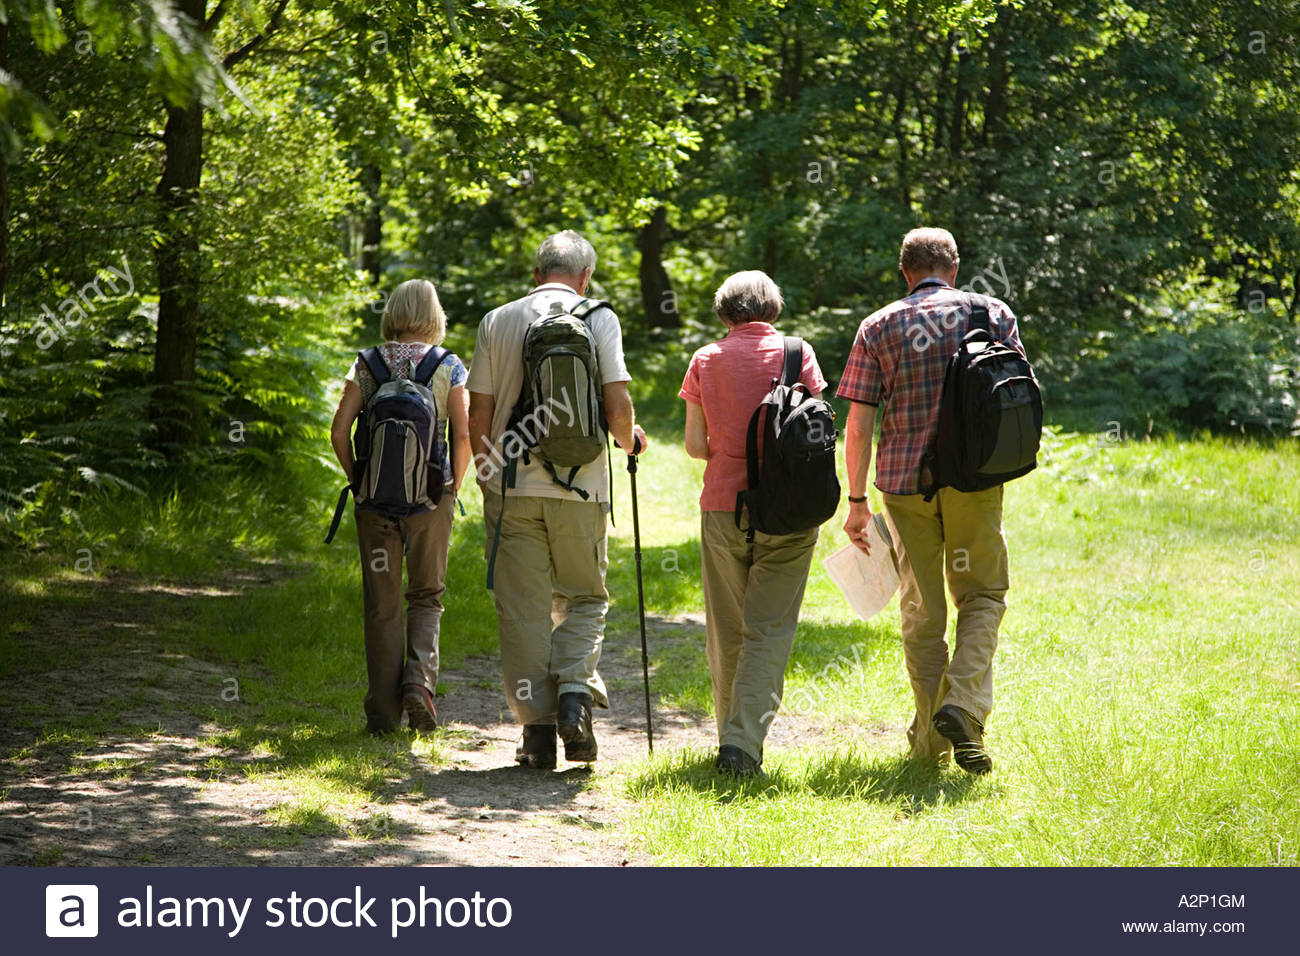 Ramblers walking in countryside - Stock Image